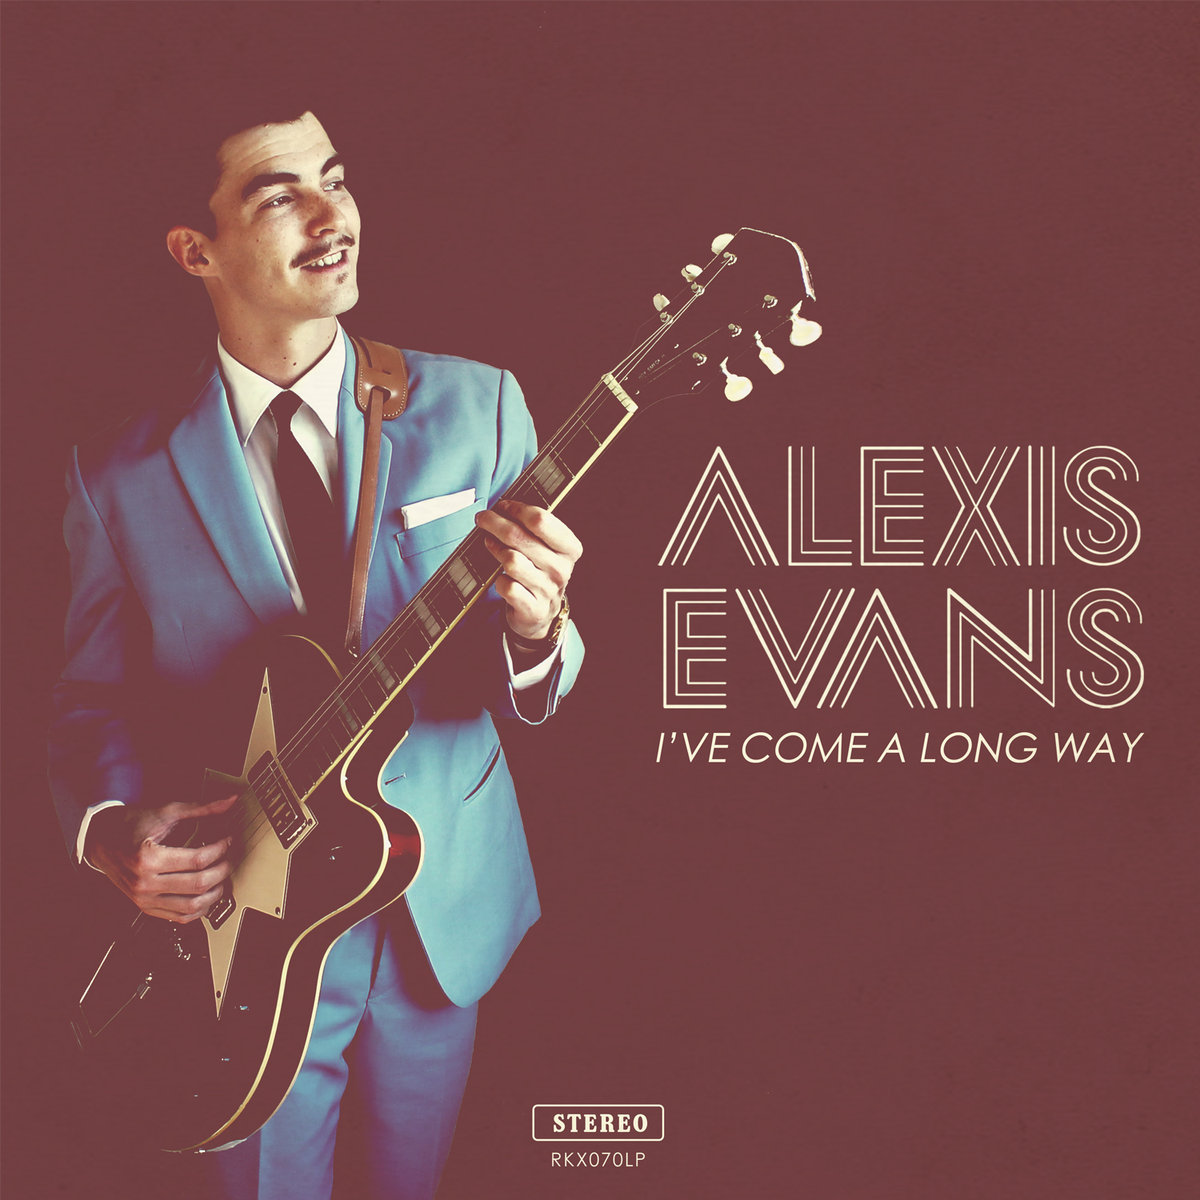 « I MADE A DEAL WITH MYSELF » : PREMIER TITRE D'ALEXIS EVANS CHEZ RECORD KICKS